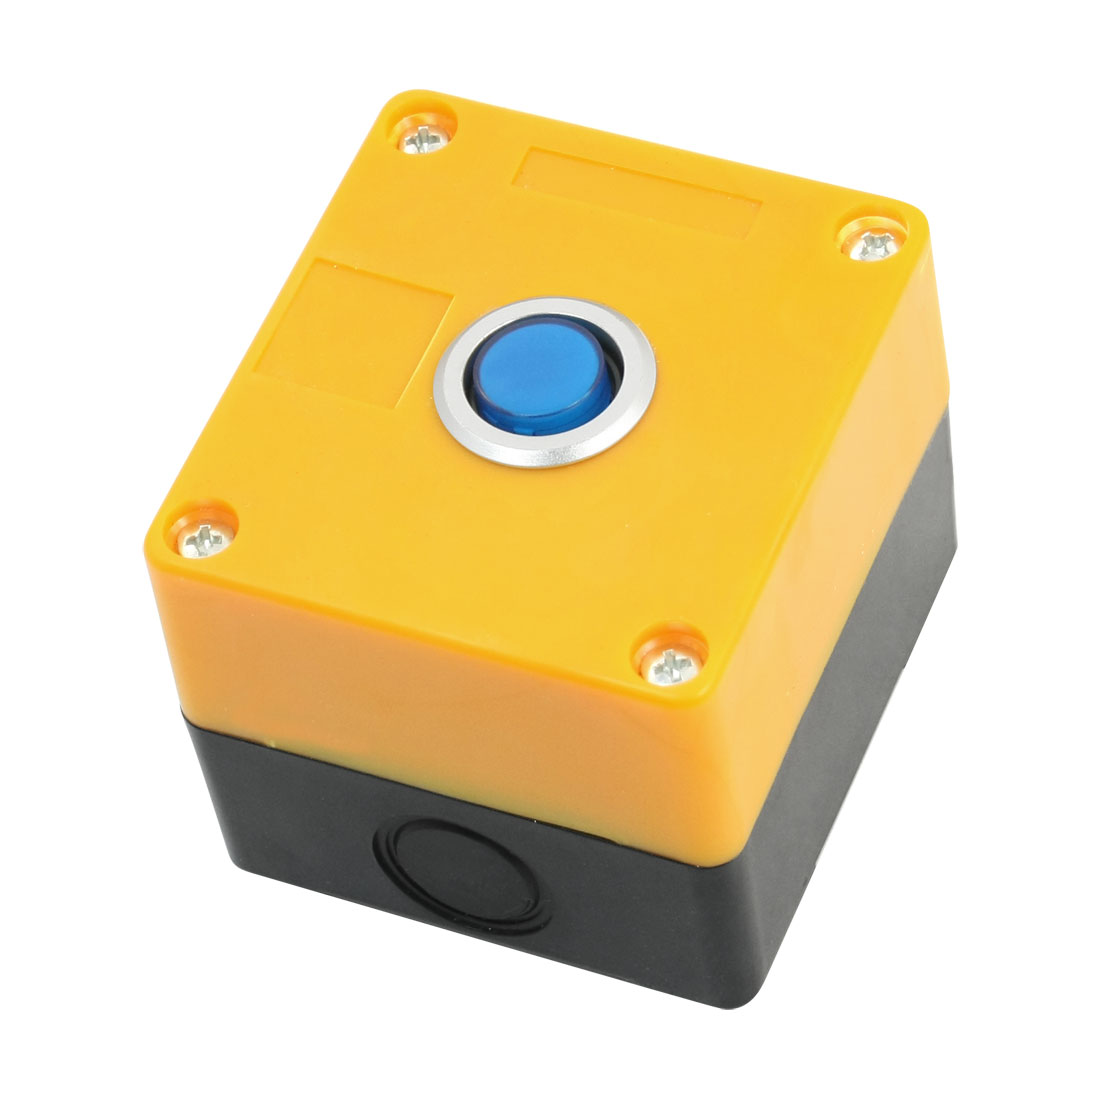 Blue 12V Pilot Lamp AC 250 Volt 5A SPDT 5 Terminals Momentary Single Hole Pushbutton Push Button Yellow Plastic Control Station Box